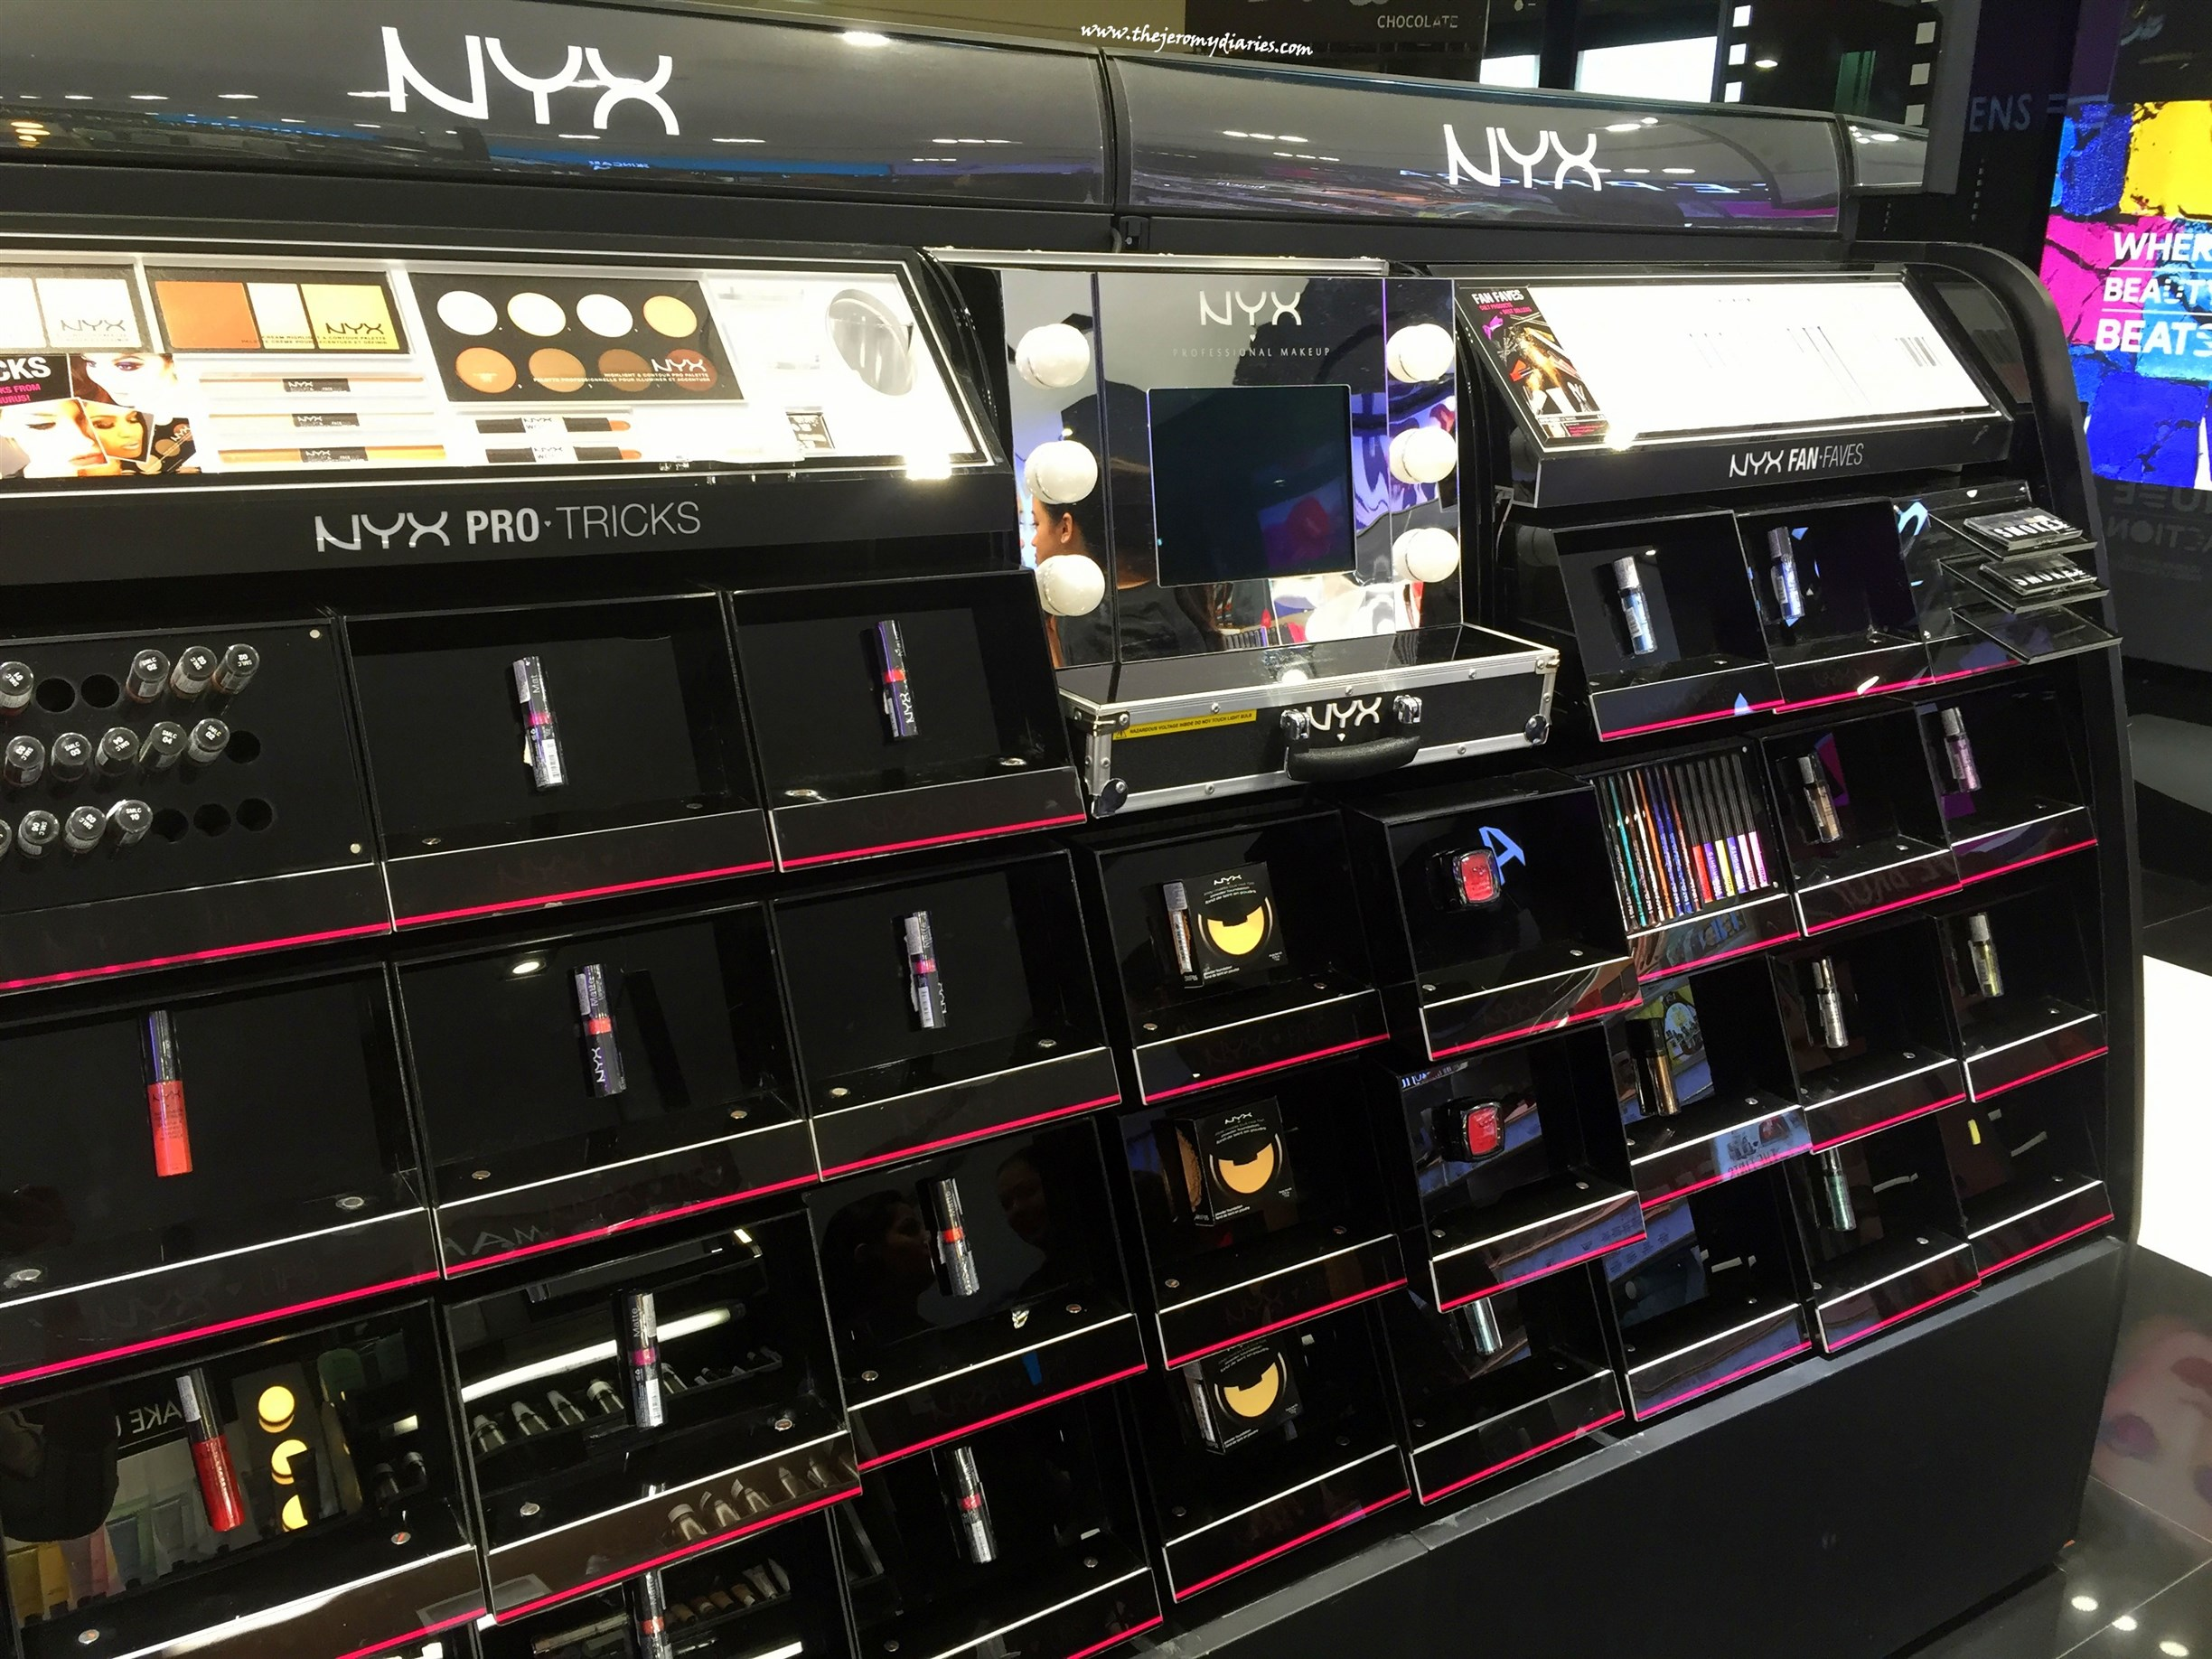 nyx at sephora bangalore the jeromy diaries (2448 x 1836)